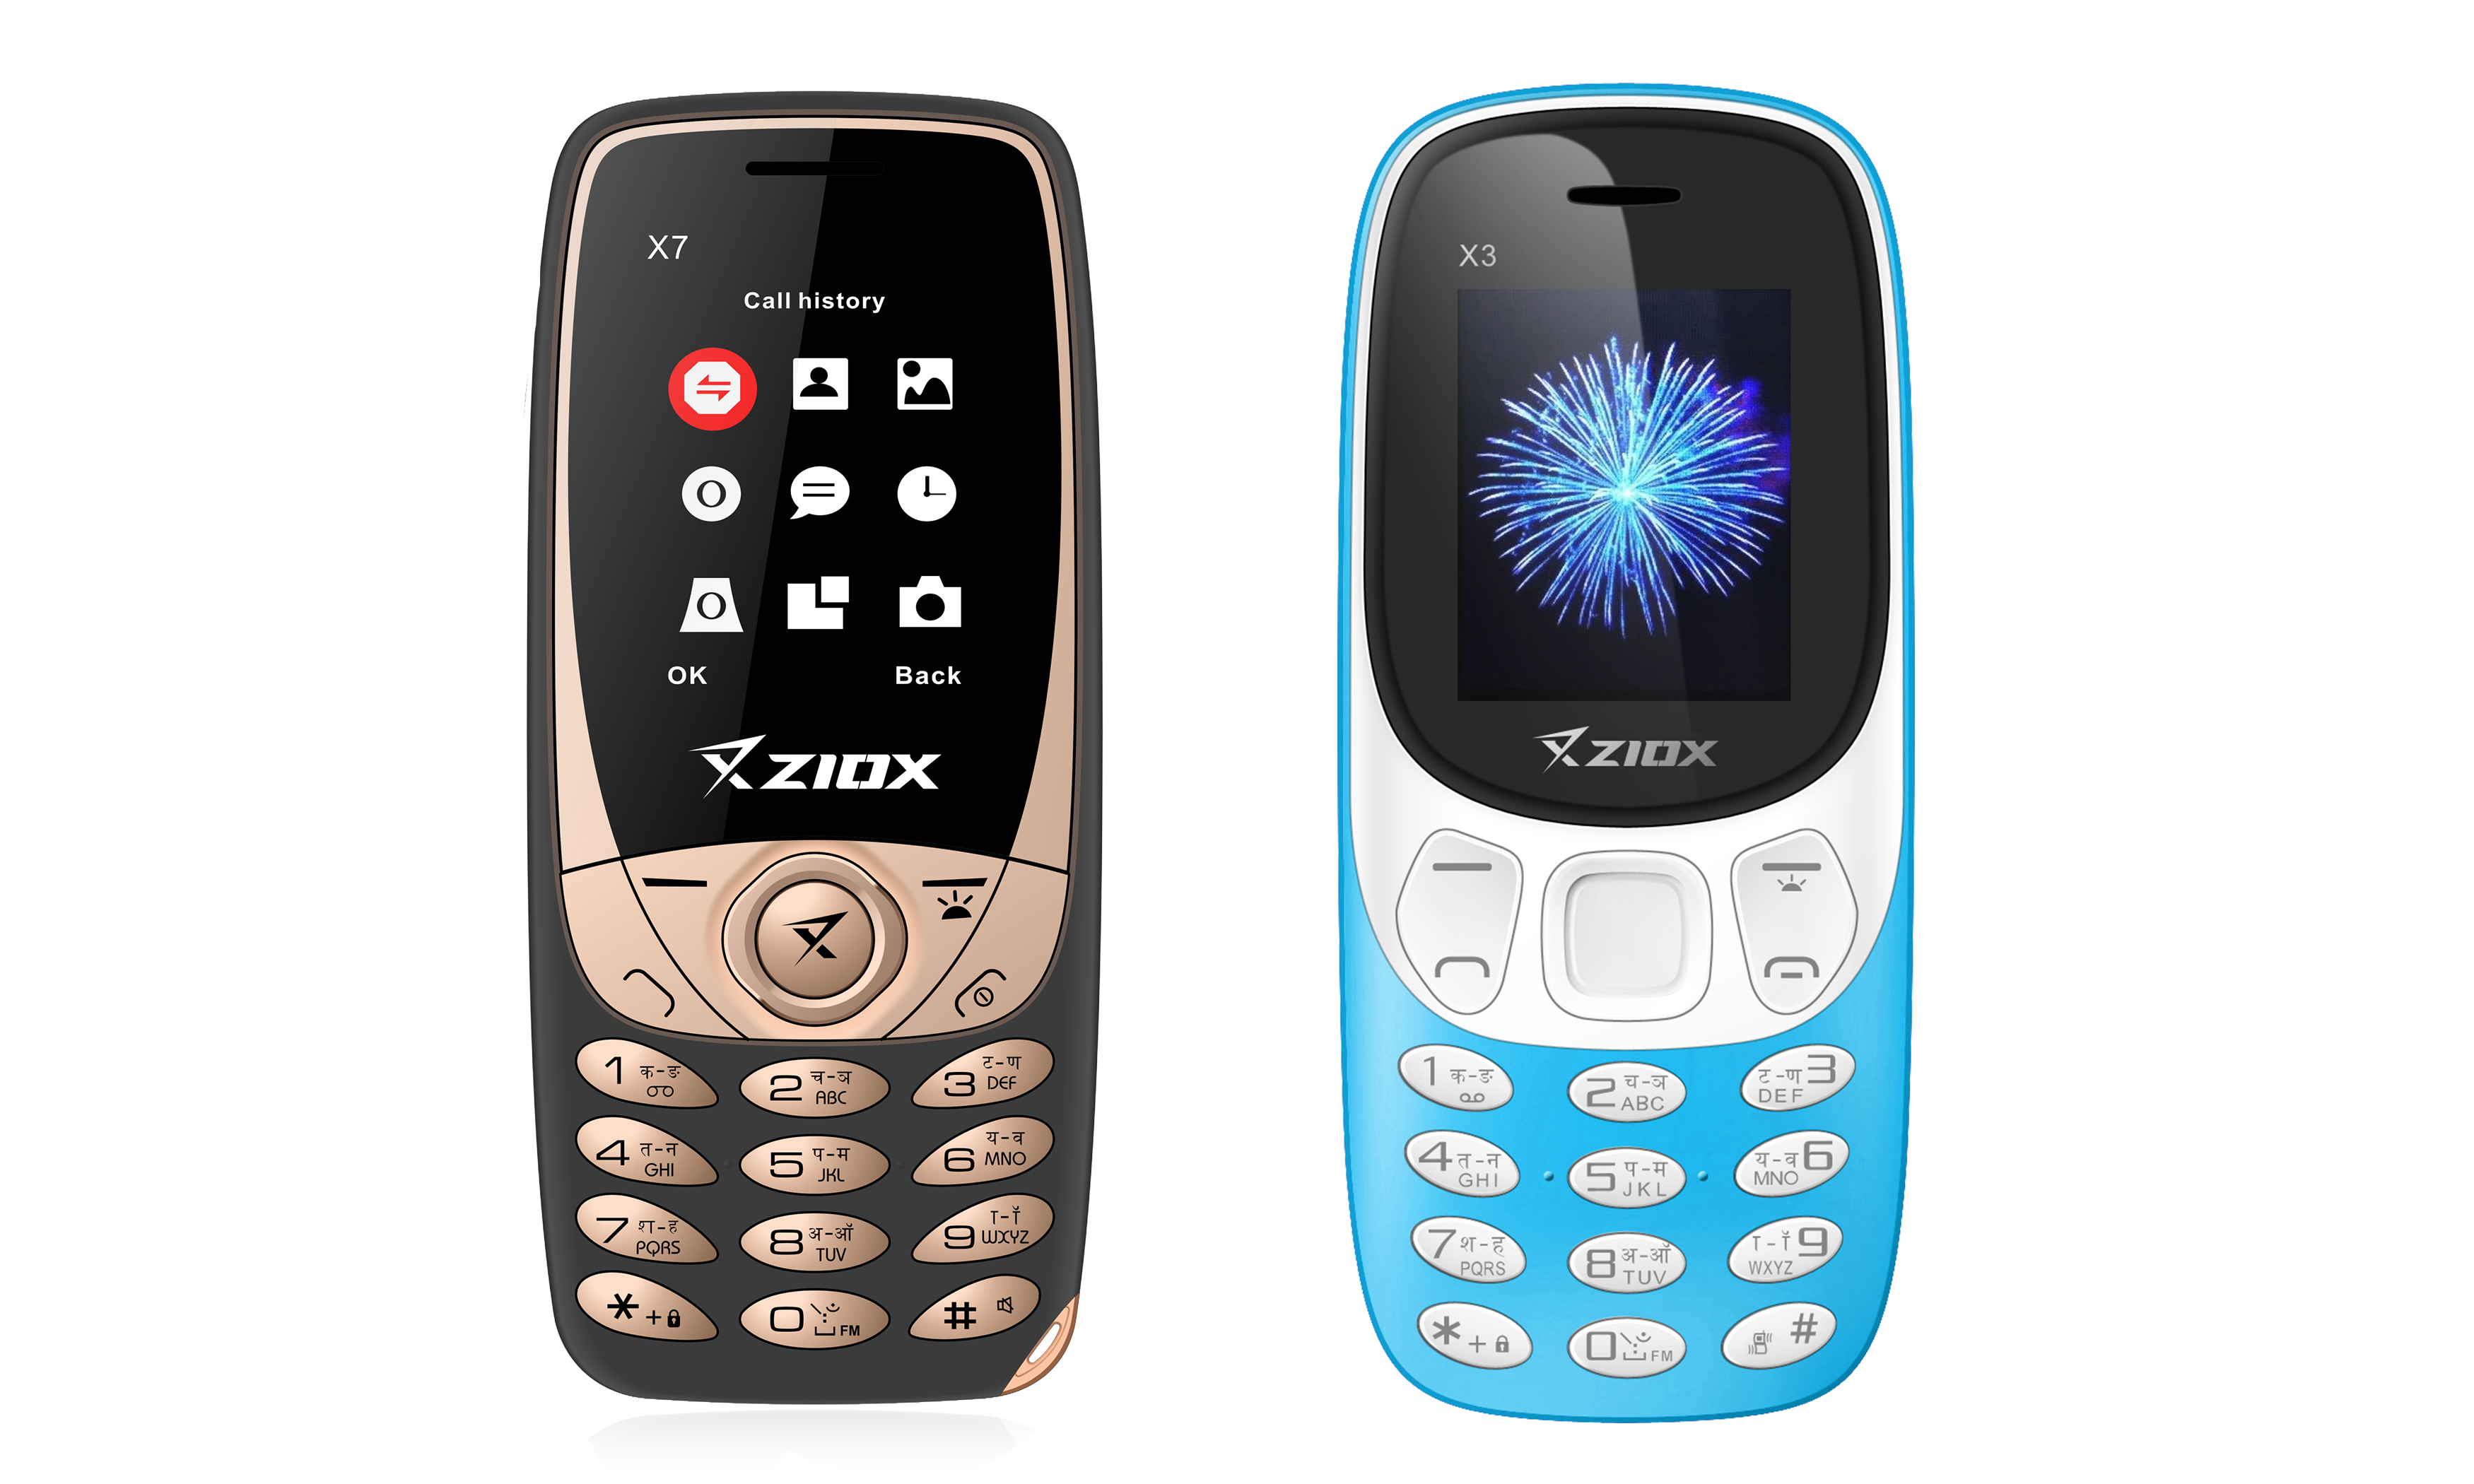 Ziox mobile